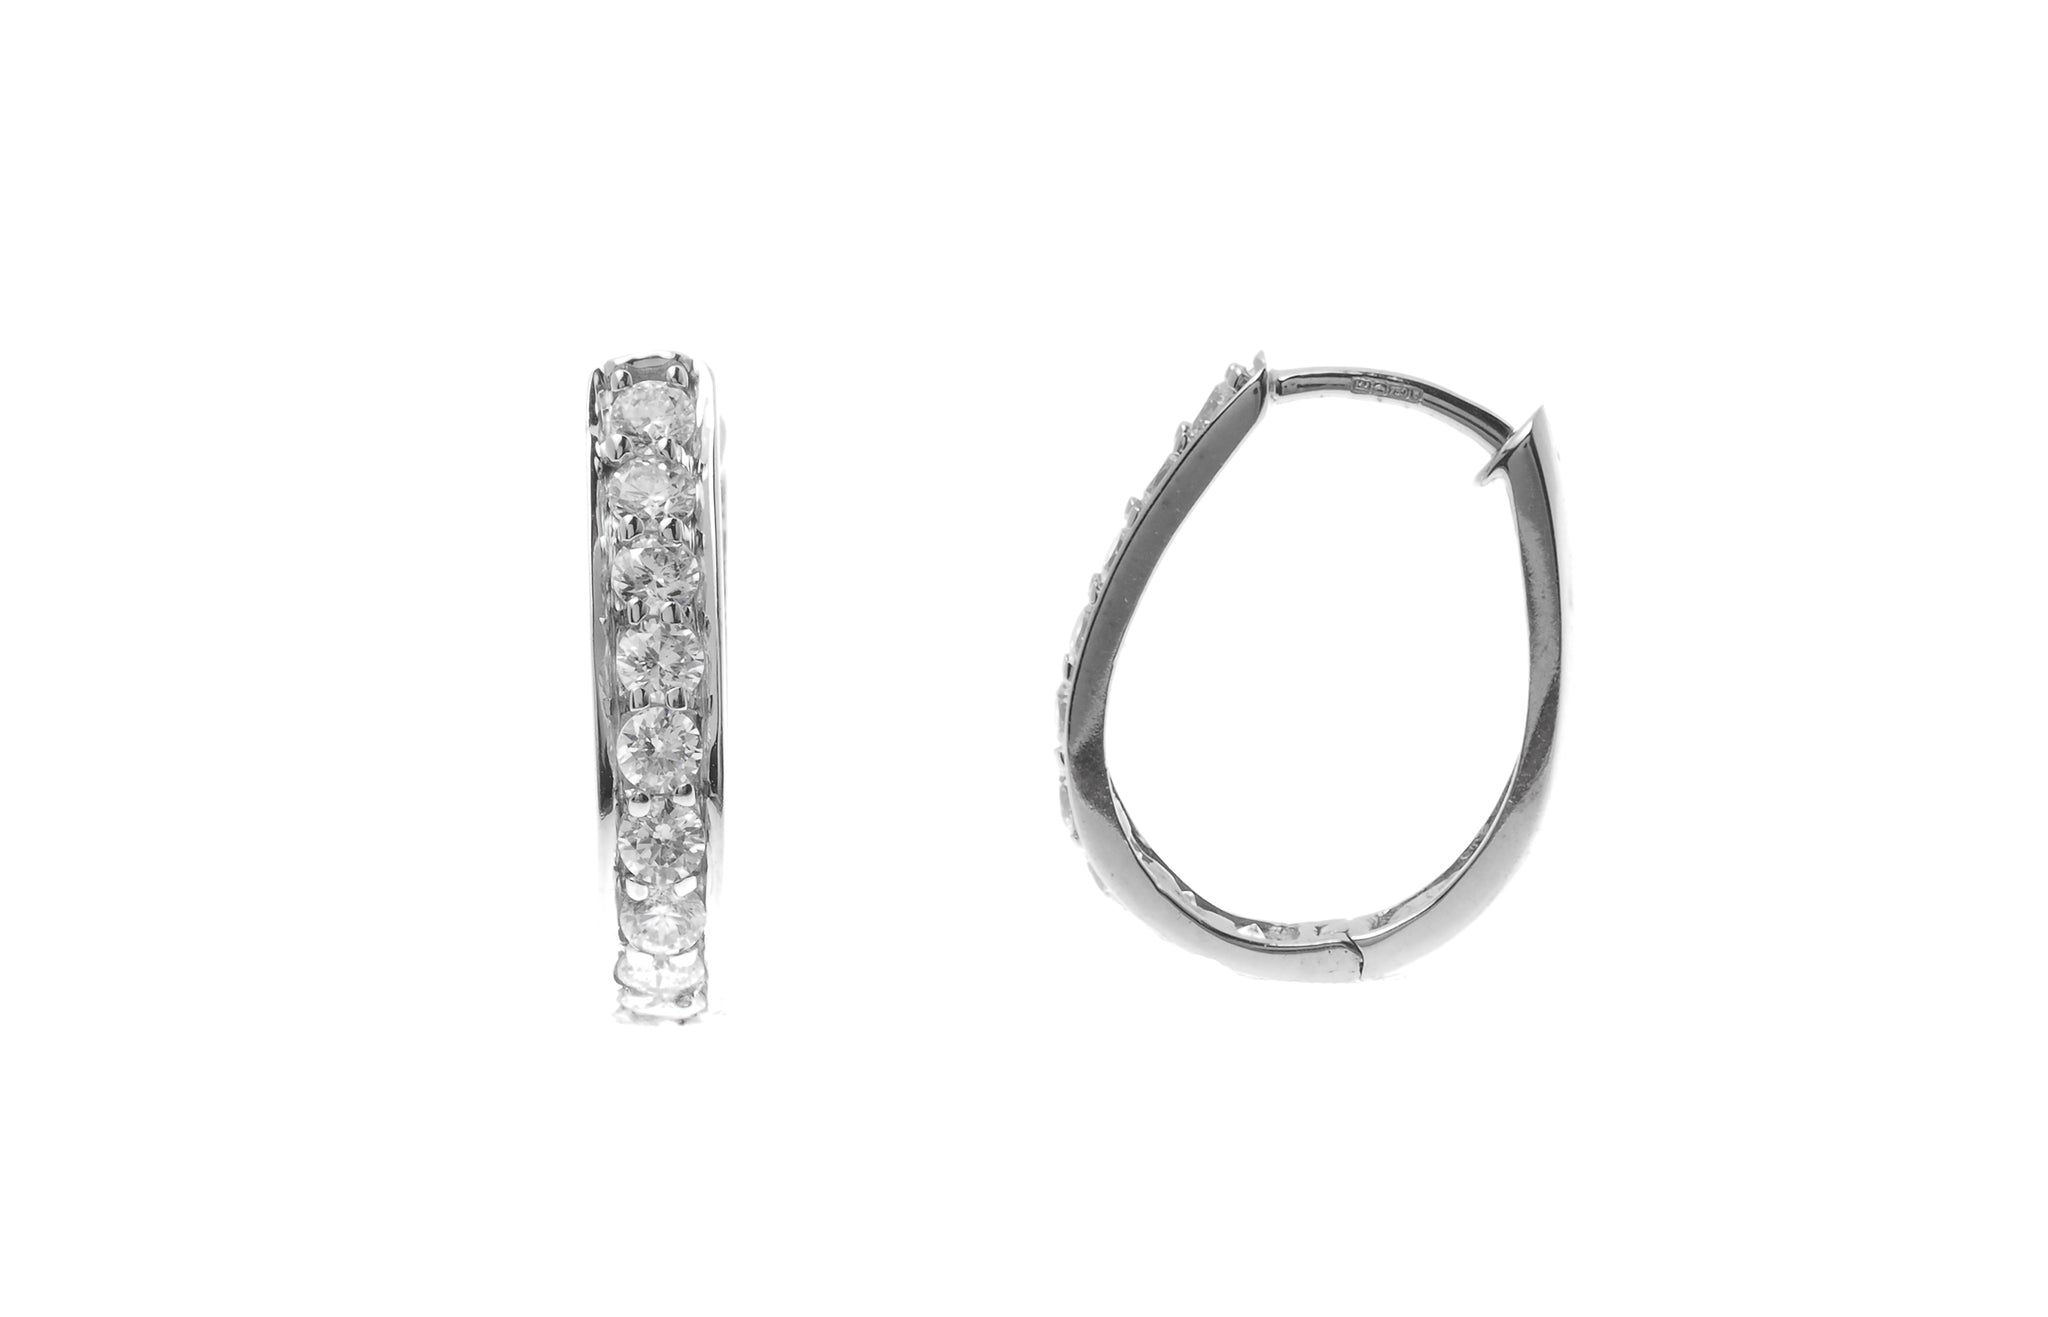 18ct White Gold Hoop Earrings set with Cubic Zirconia stones (3.48g) (BET8019)